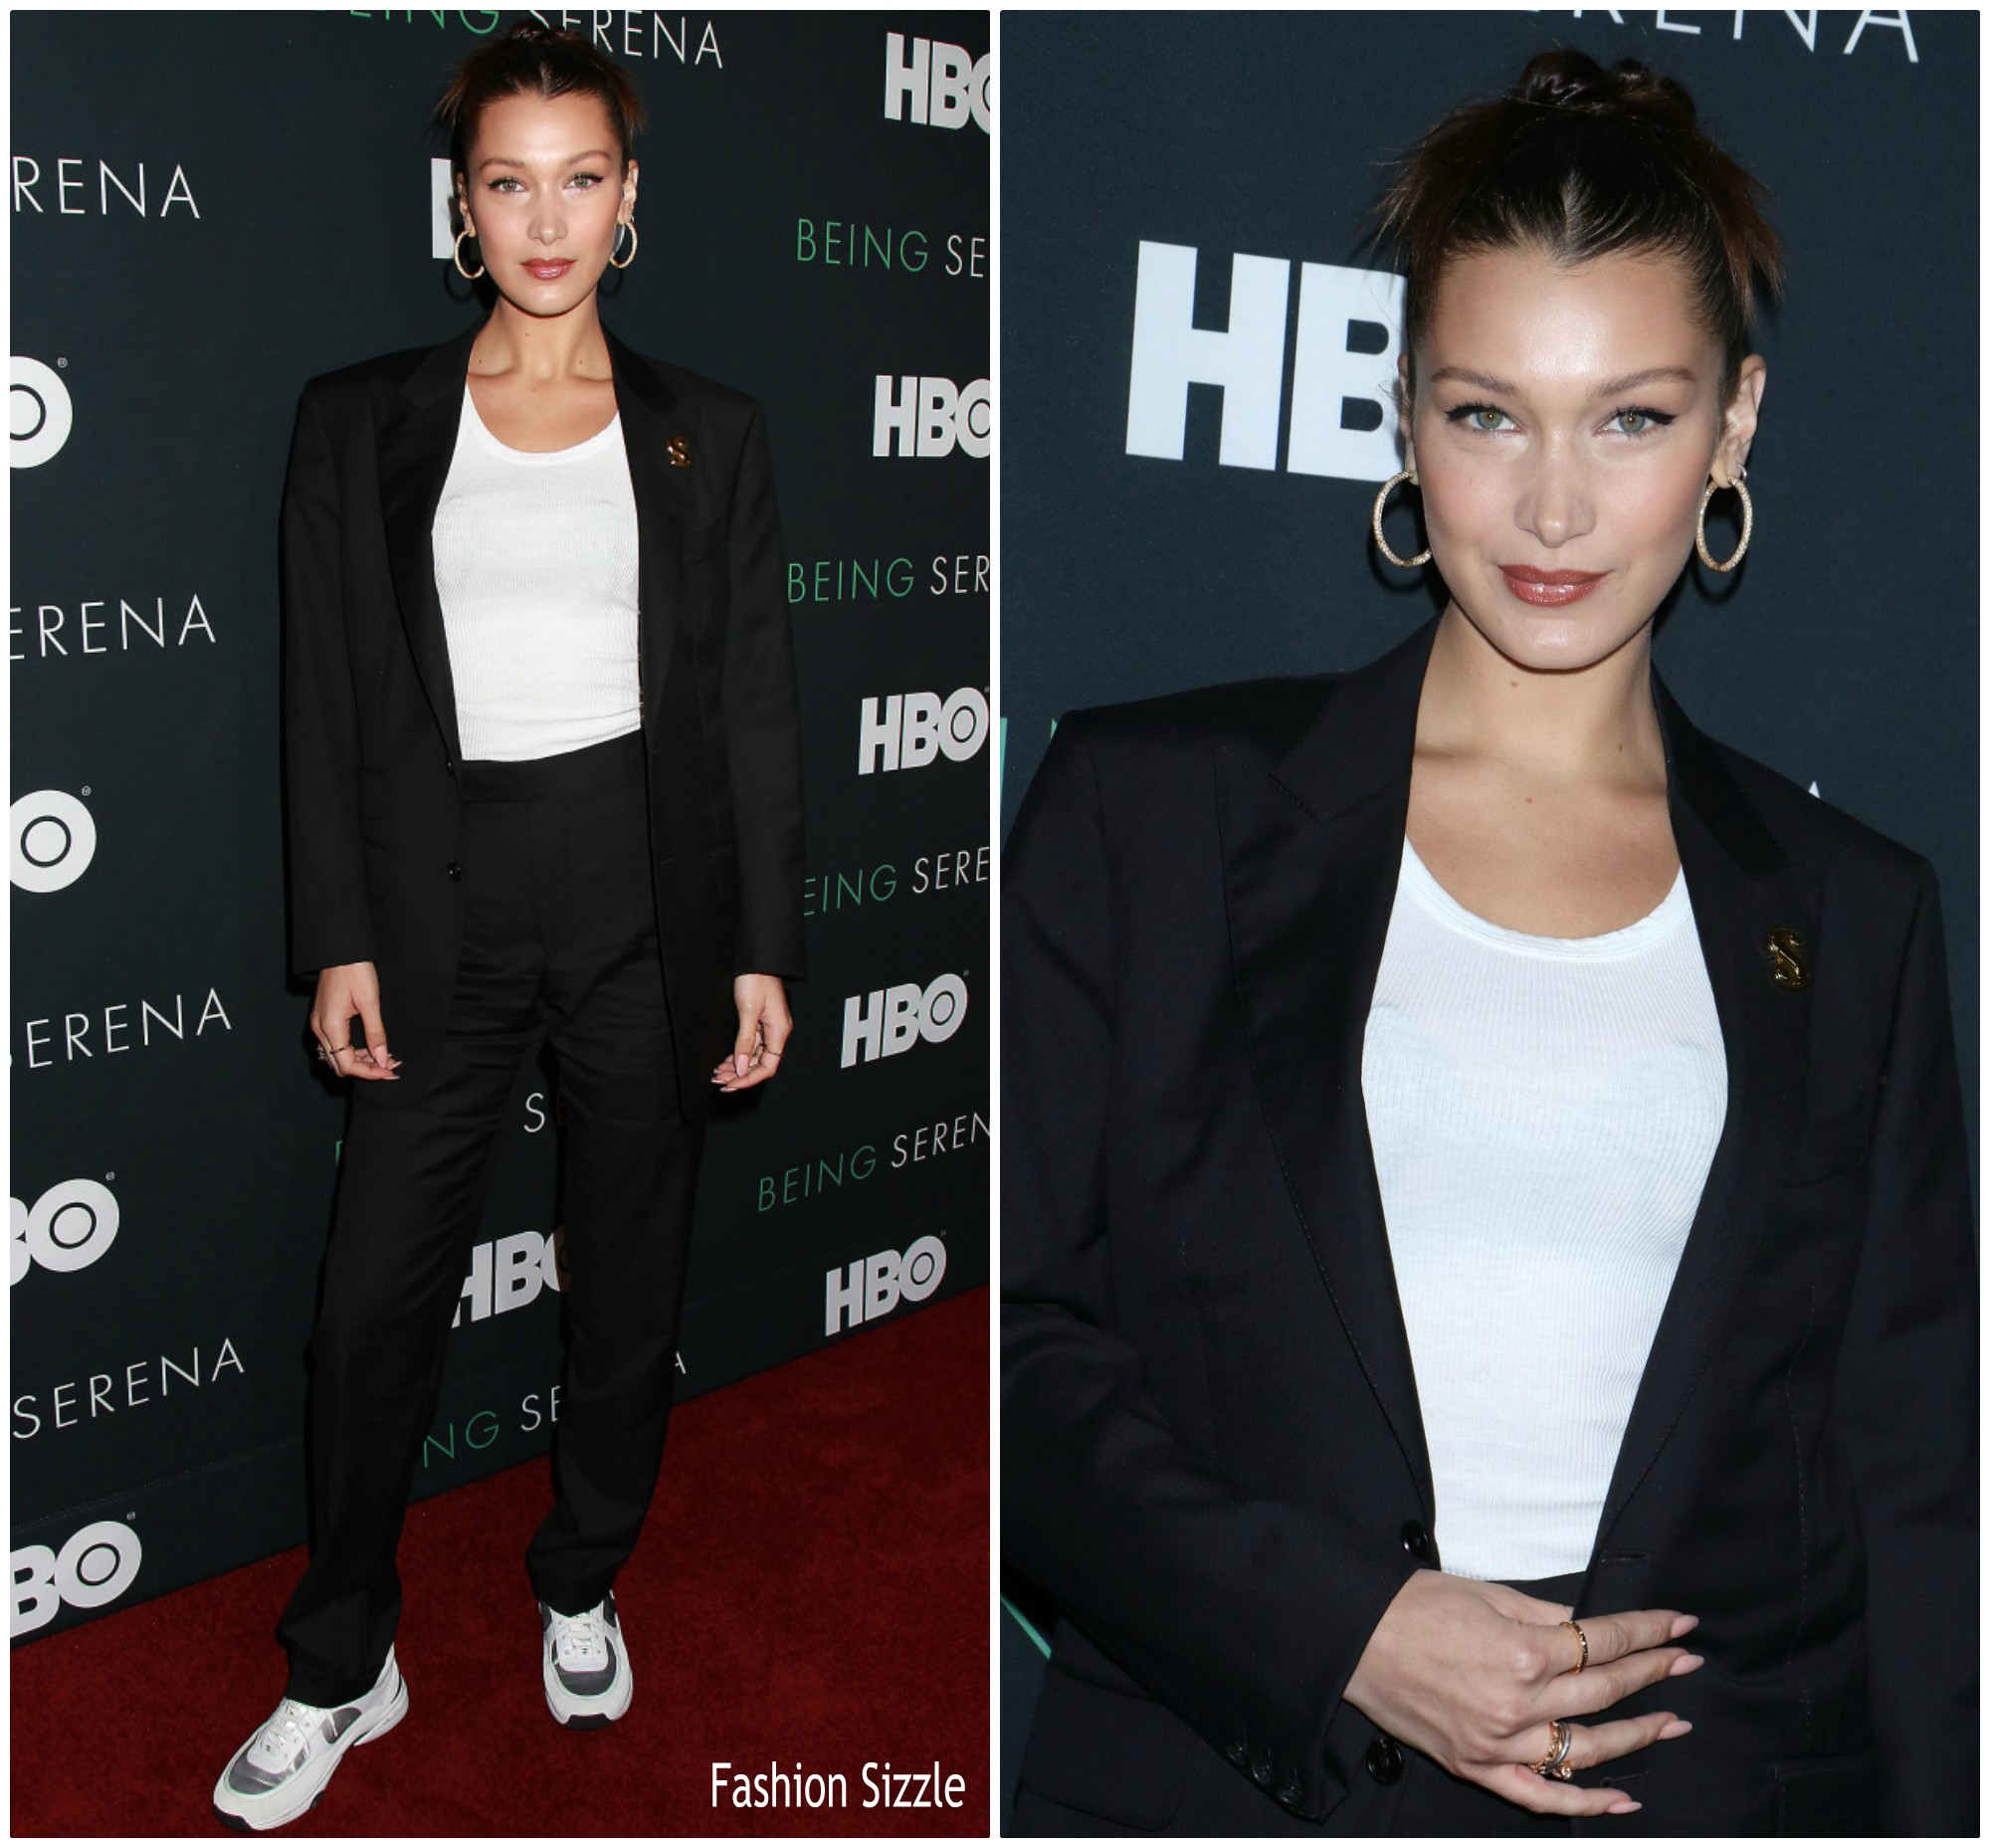 bella-hadid-in-tom-ford-being-serena-new-york-premiere